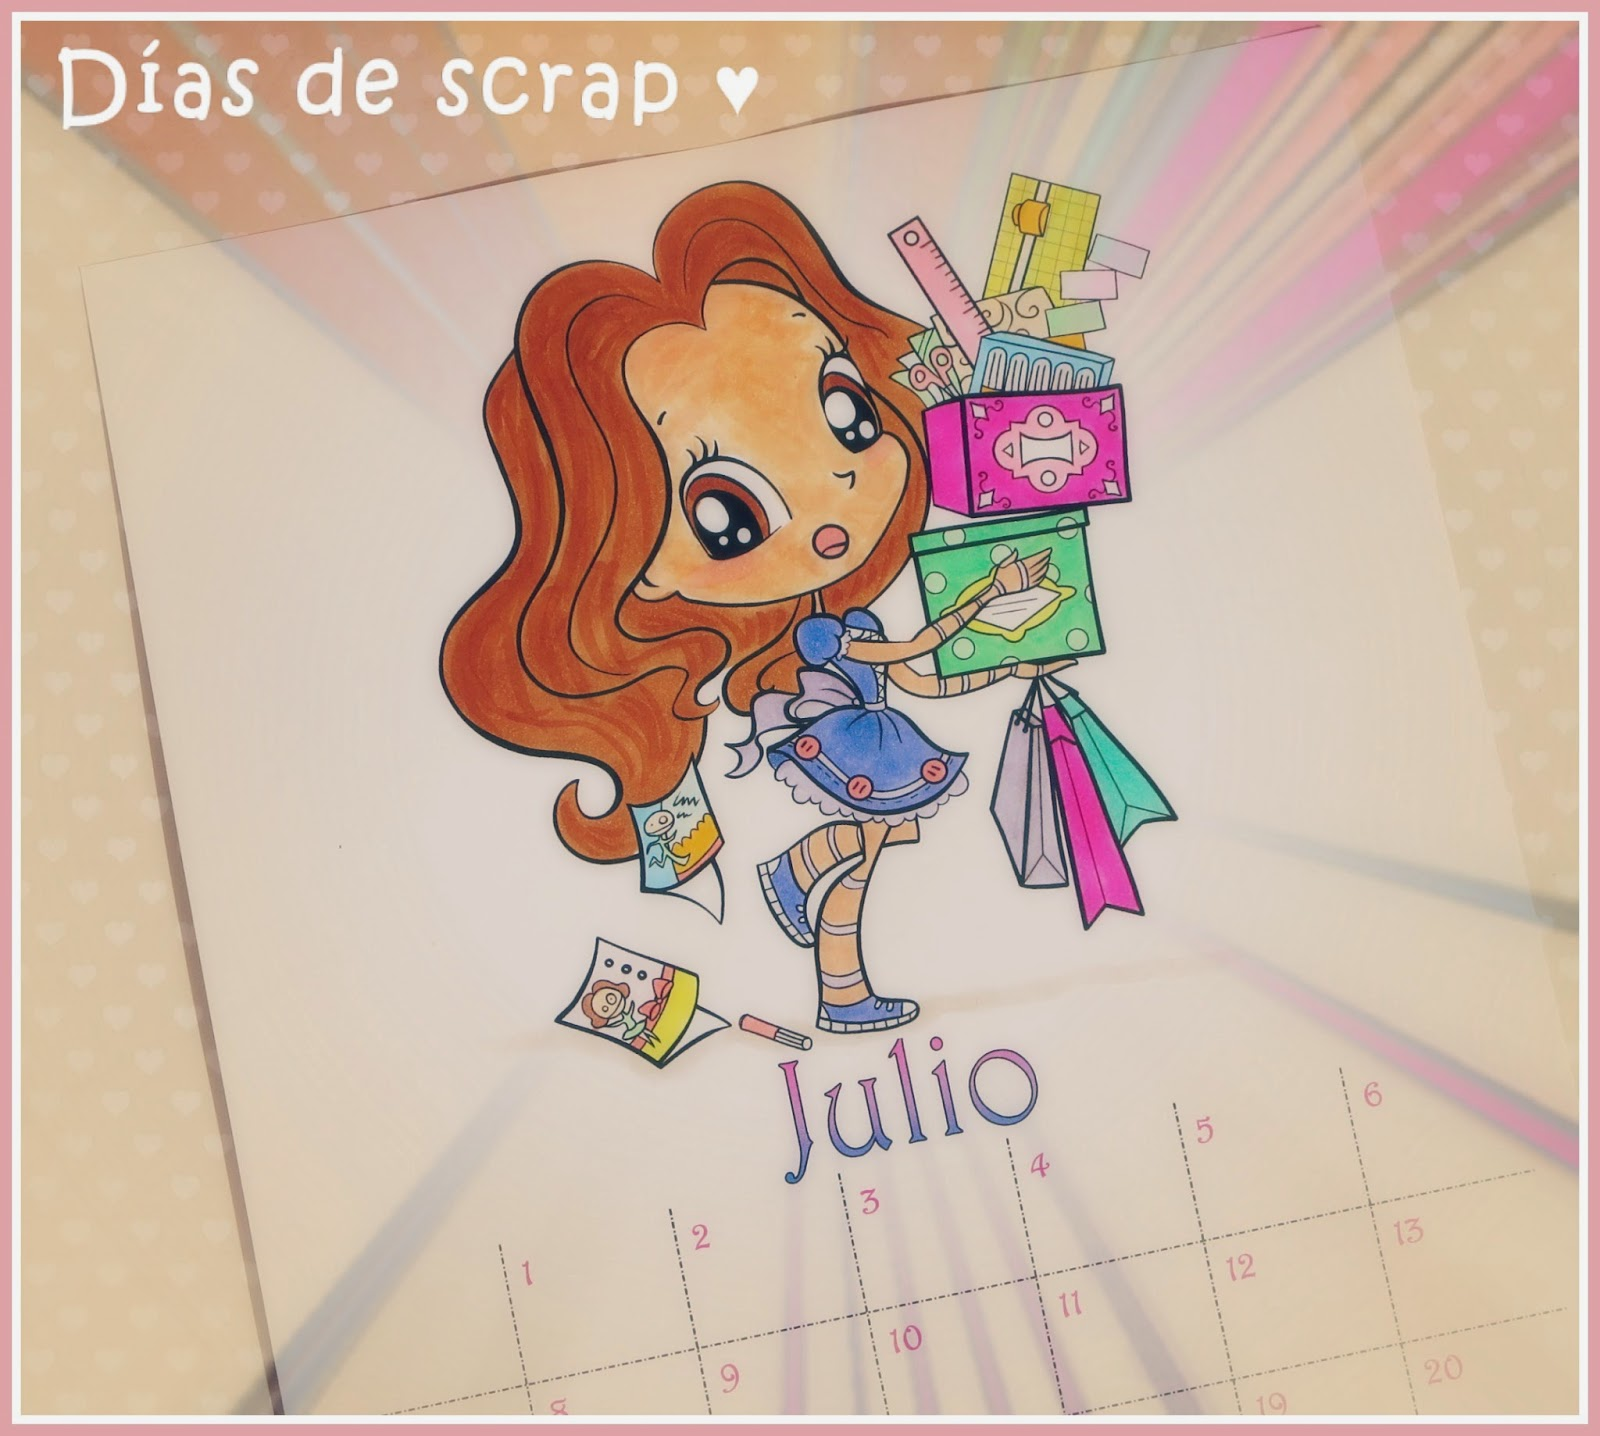 Calendario scrap mes de julio Alicia Bel